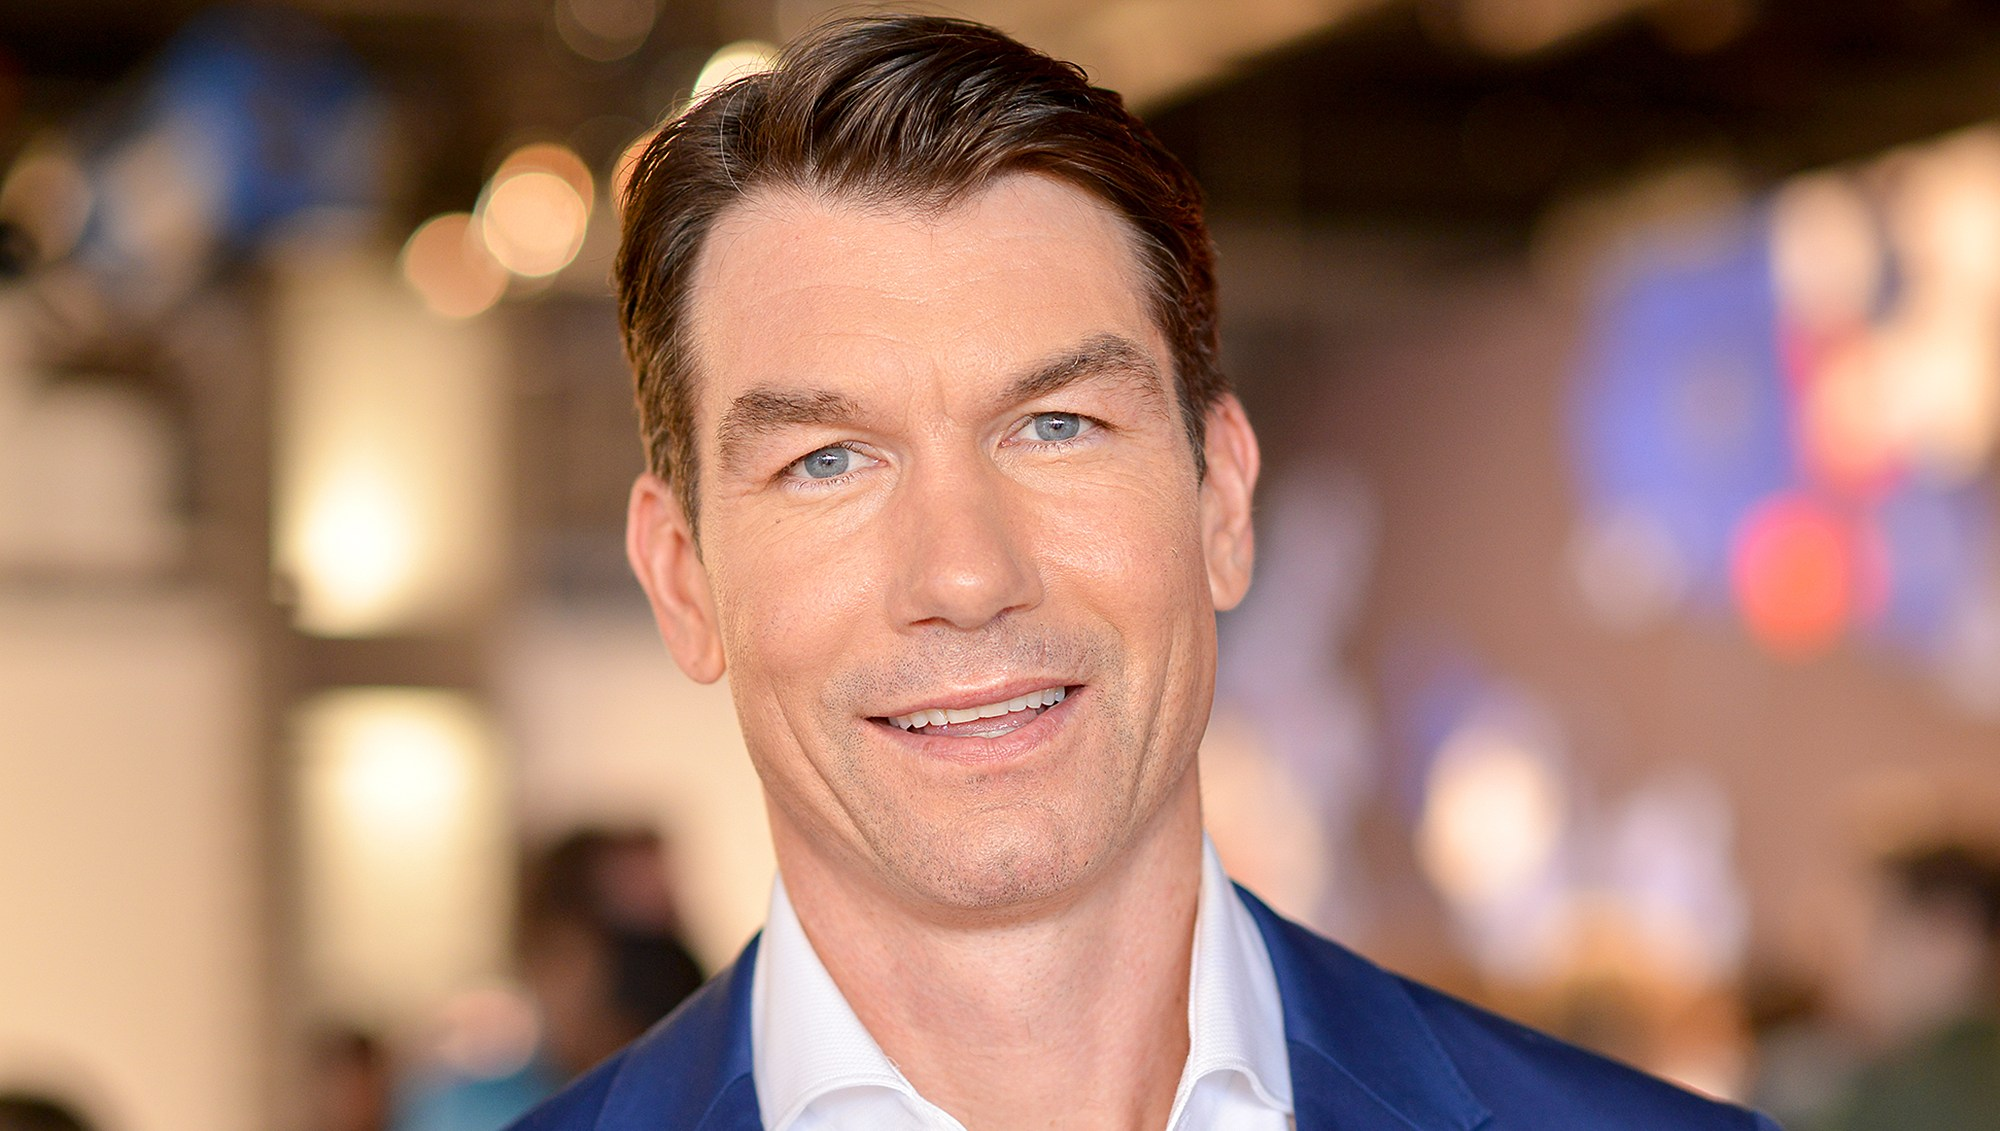 Jerry O'Connell attends Tommy Hilfiger presentation during New York Fashion Week: Men's S/S 2017 at Skylight 60 Tenth in New York City.